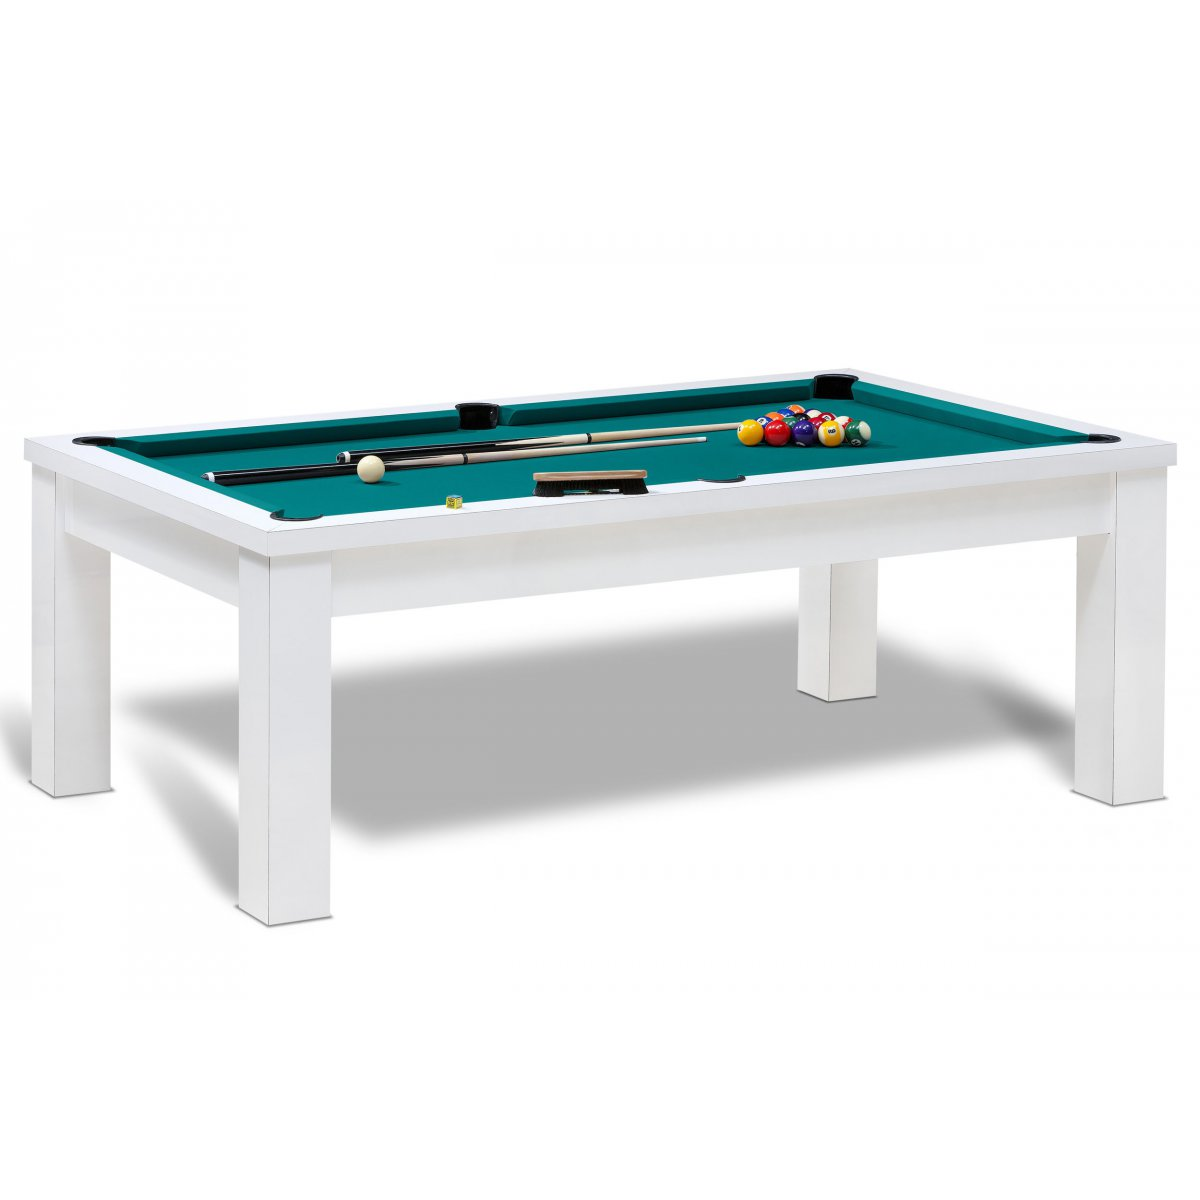 Billard americain Prix d un billard table